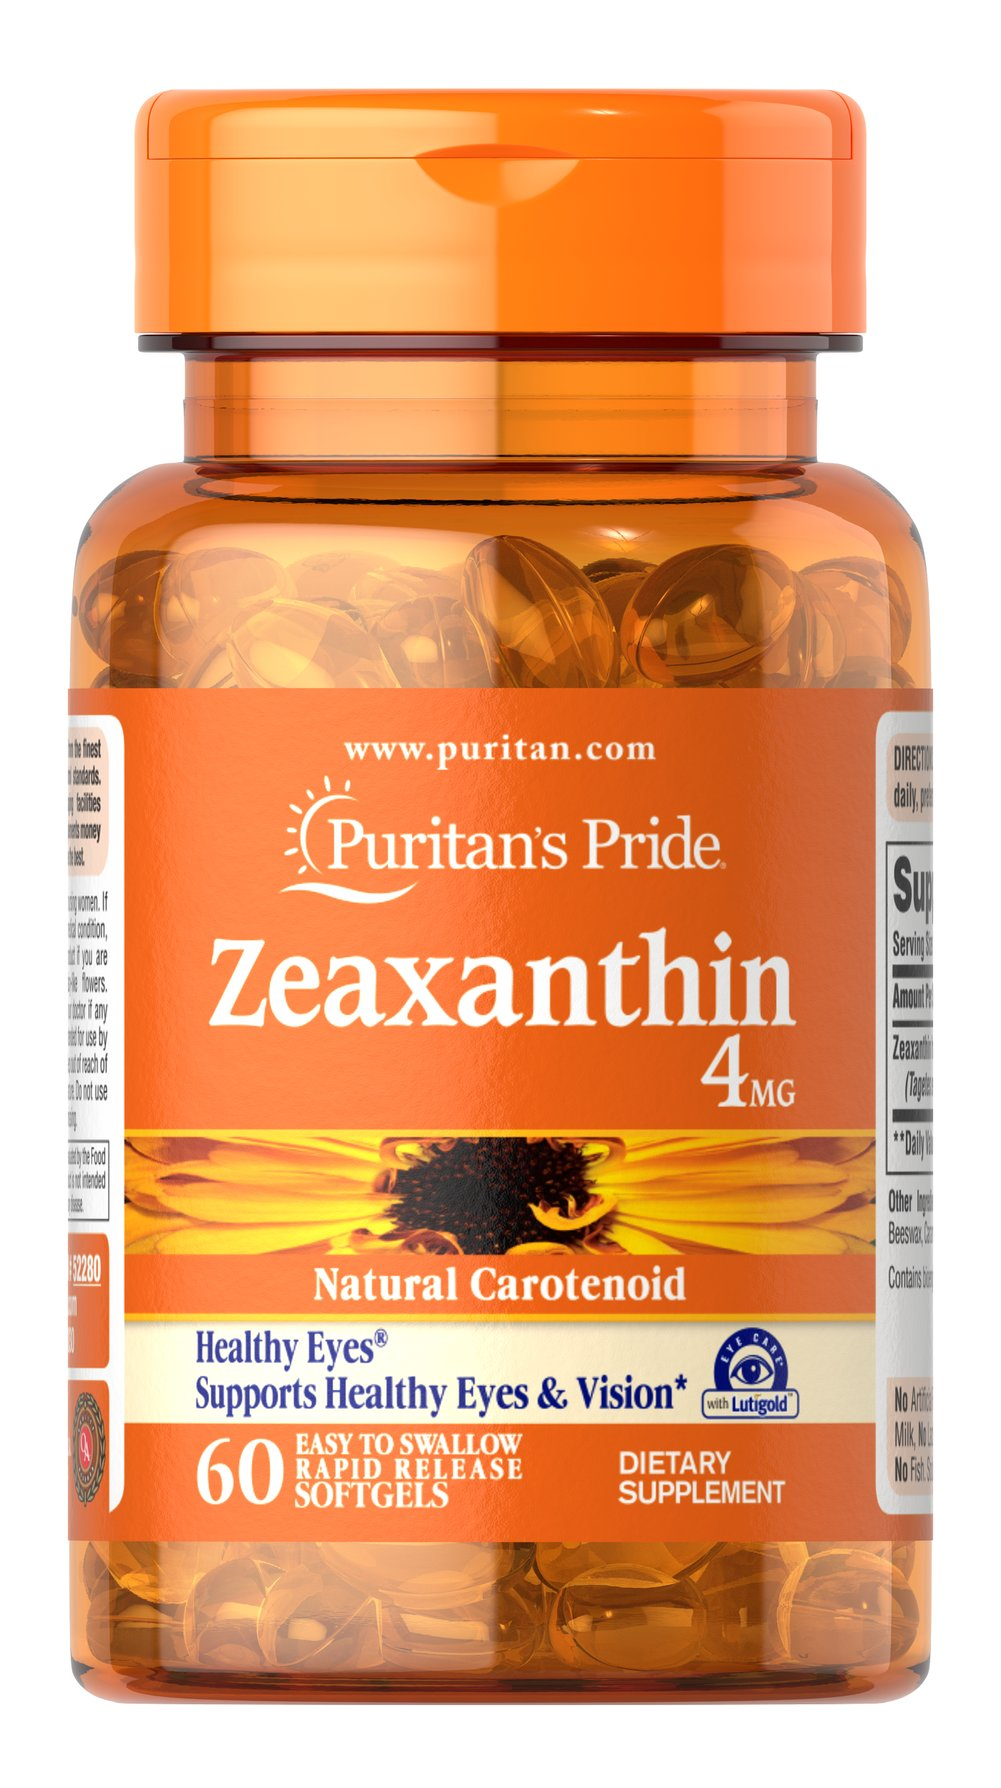 Zeaxanthin 4 mg <p>Natural Carotenoid</p><p>Supports Healthy Eyes & Vision**</p><p>Zeaxanthin is selectively placed in macula's foveal center, the area in the eyes responsible for sharp central vision.</p><p></p> 60 Softgels 4 mg $17.49